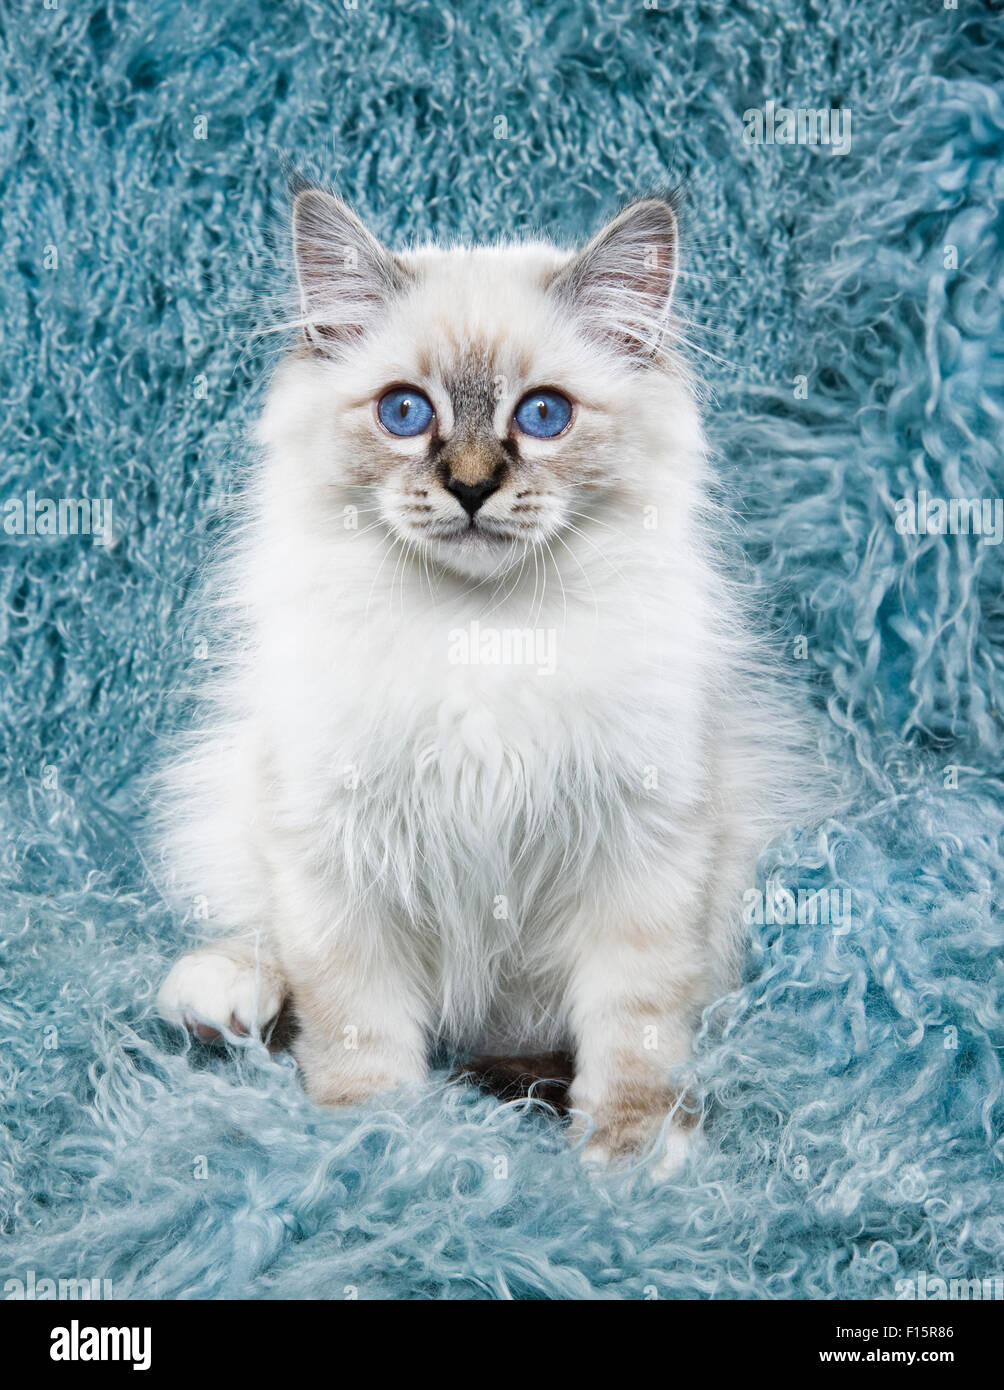 White ragdoll cat with green eyes